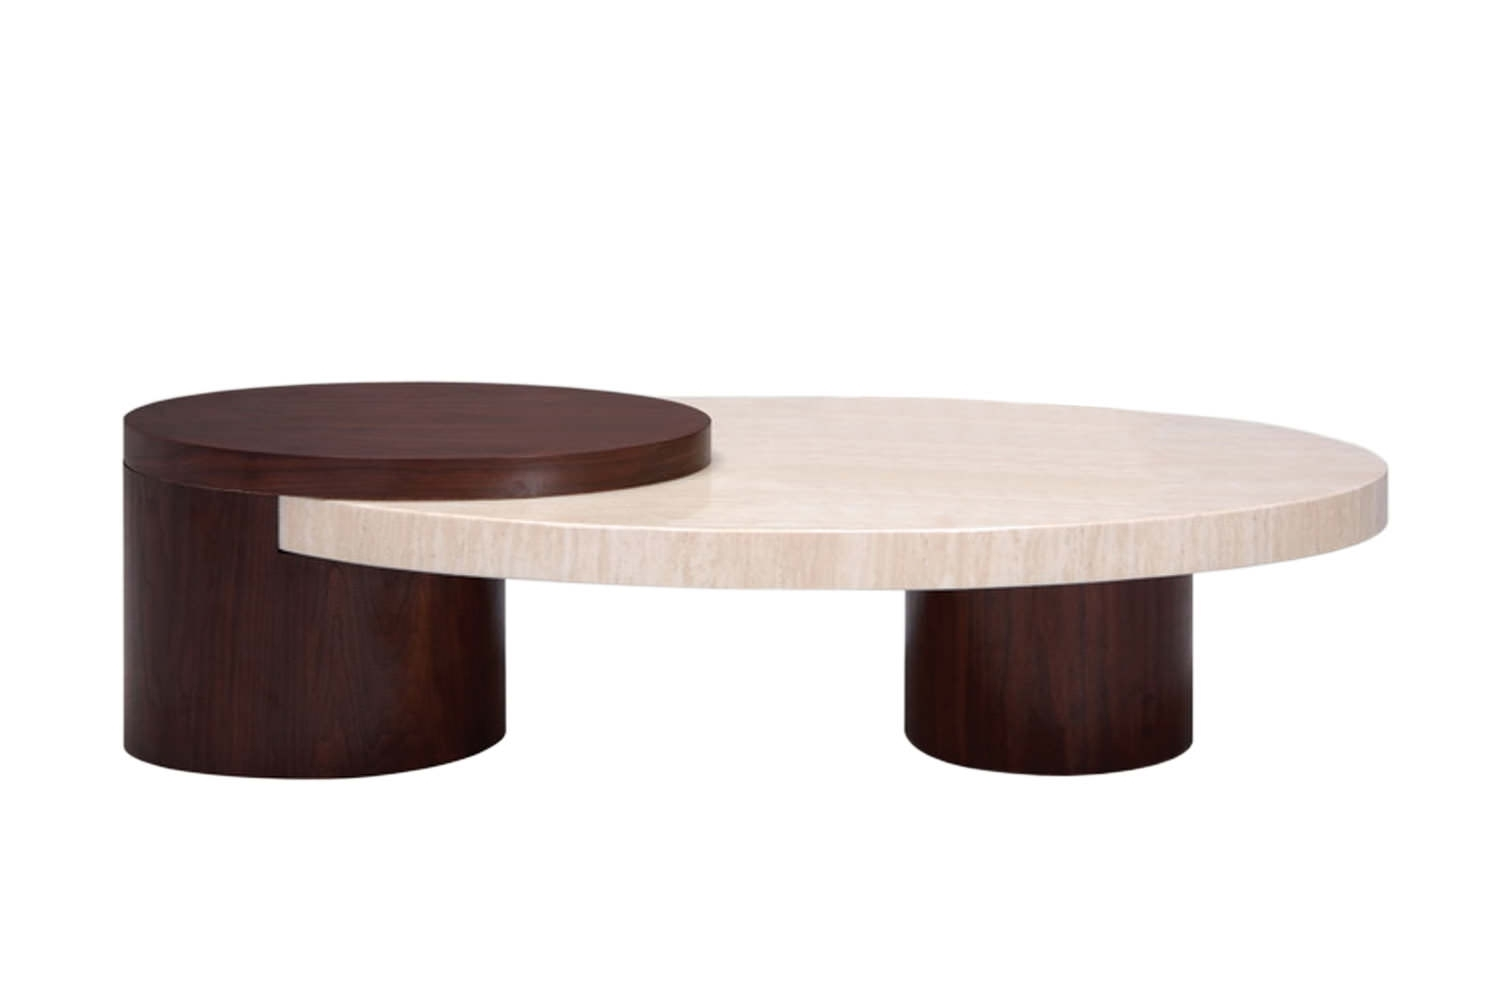 Round Travertine Coffee Table — Sushi Ichimura Decor : Contemporary with Chiseled Edge Coffee Tables (Image 22 of 30)